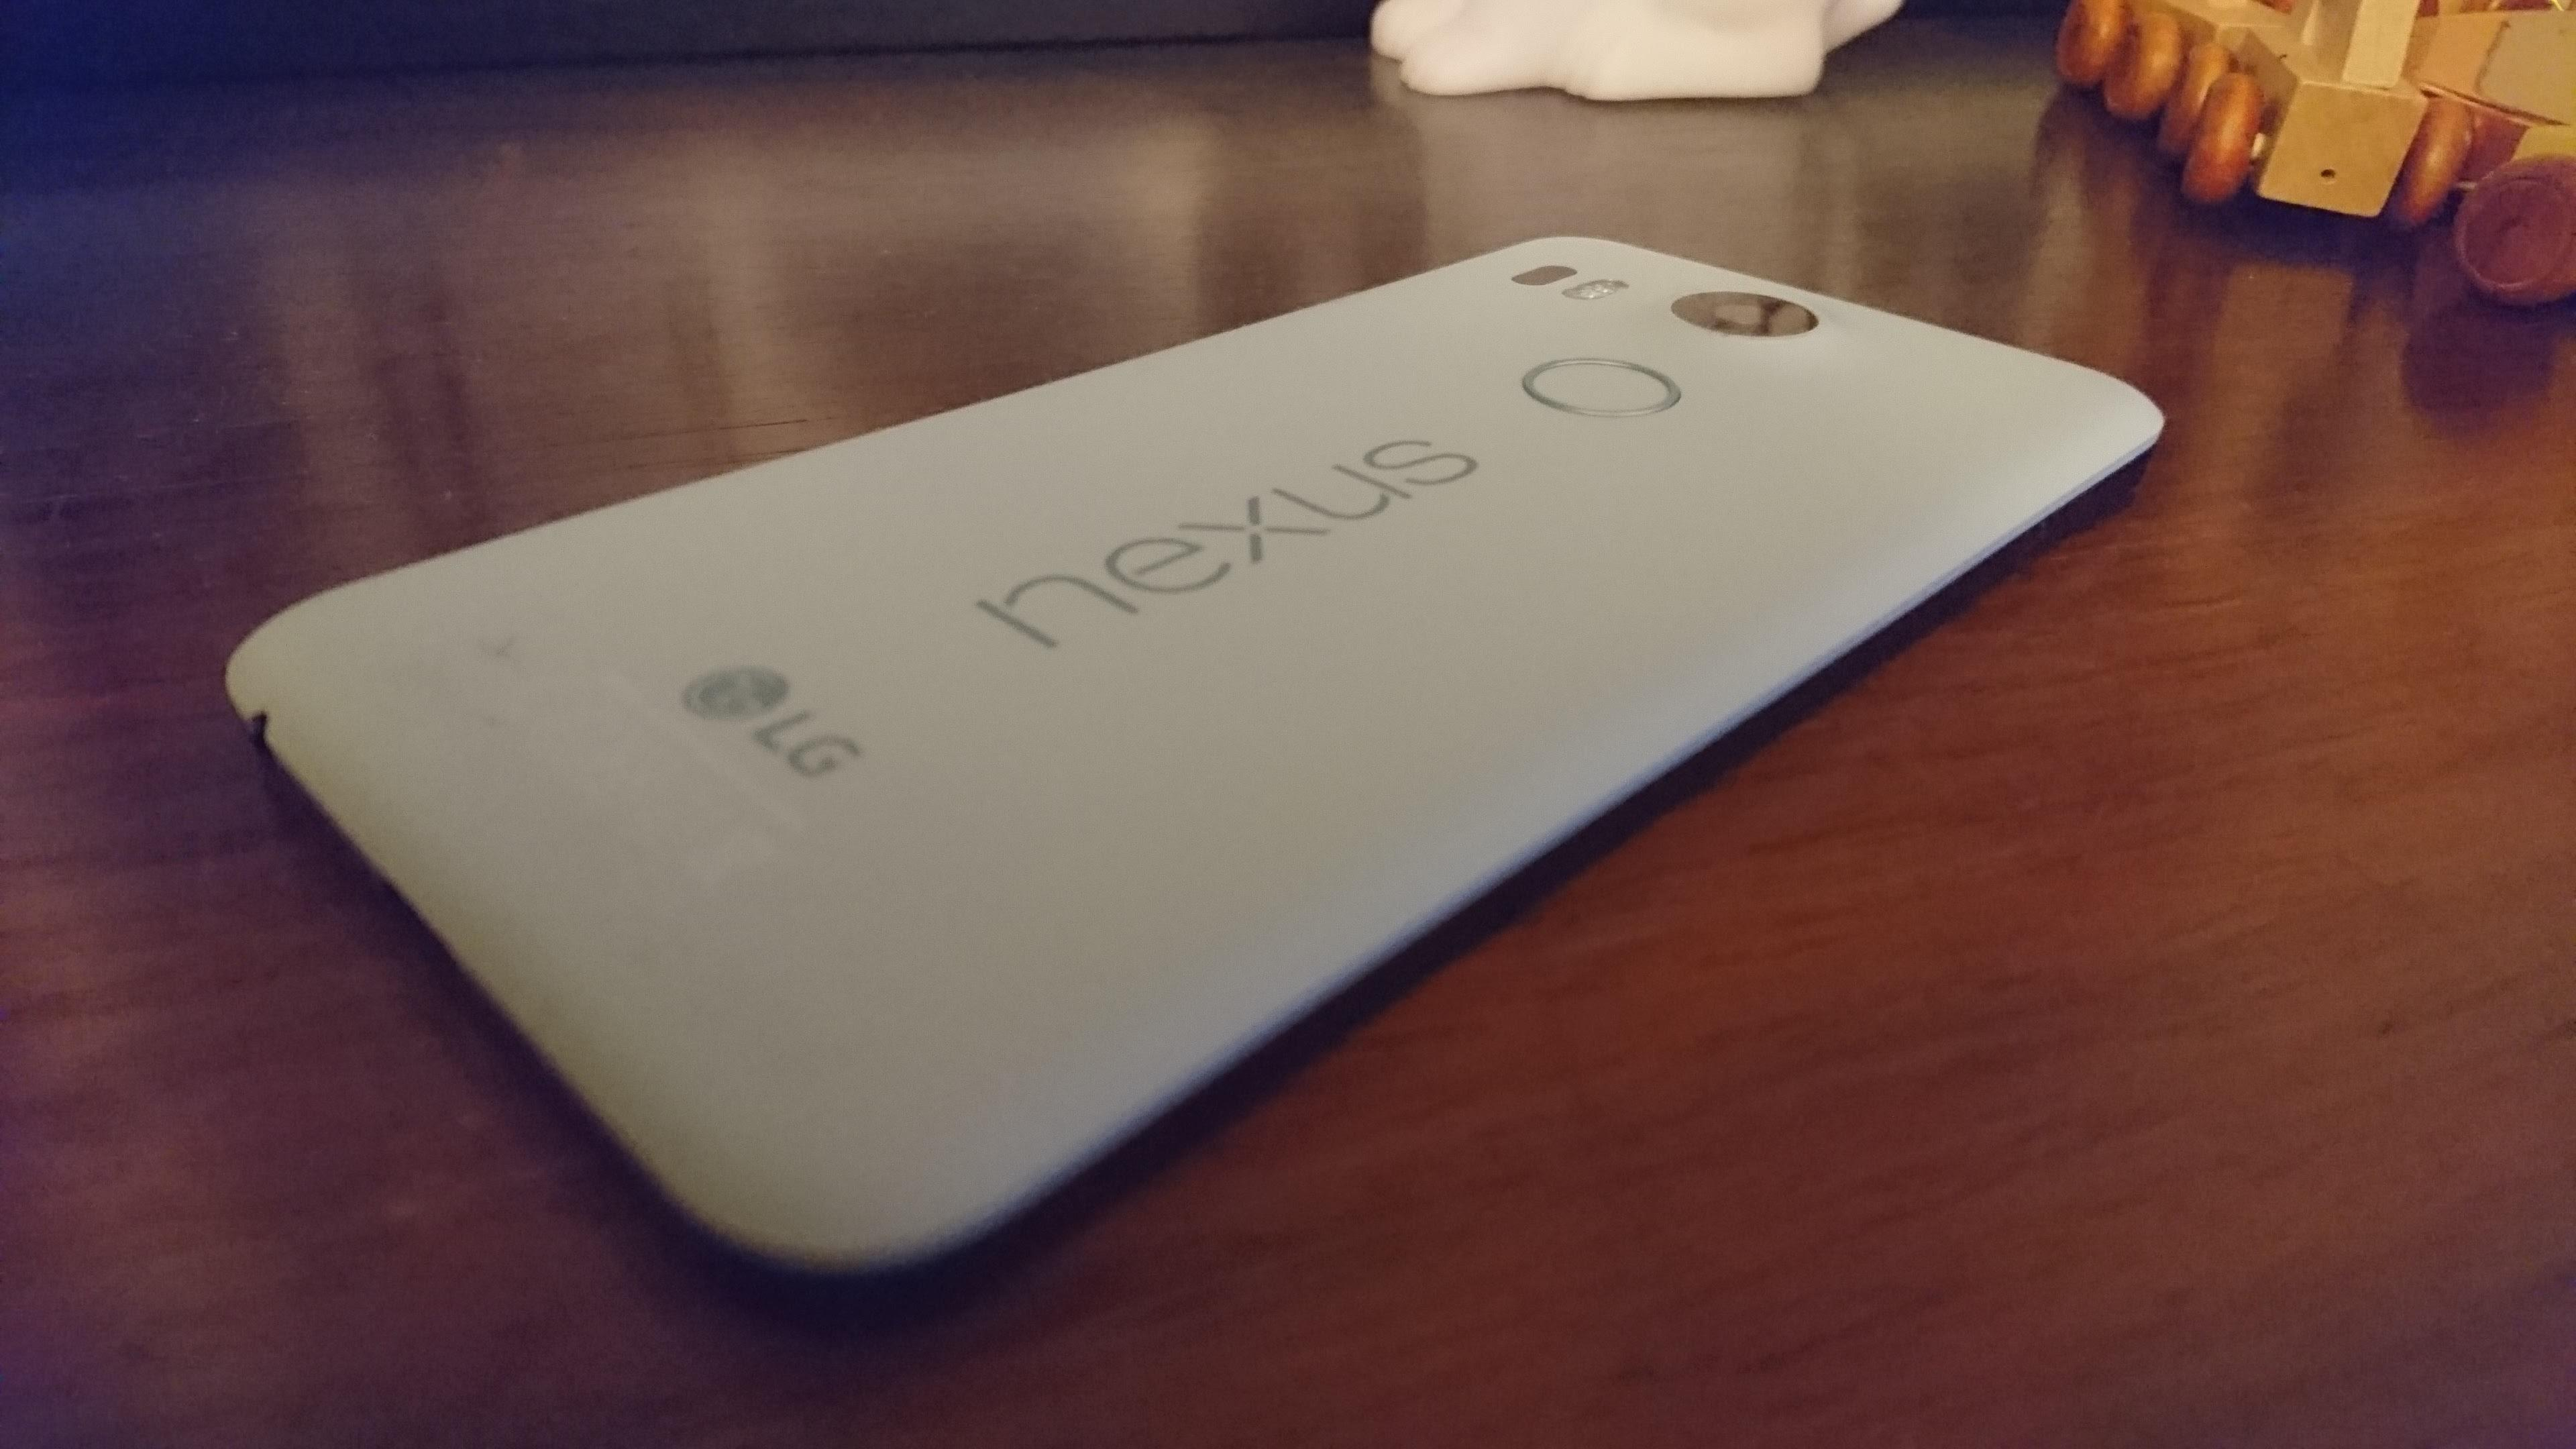 Nexus 5X Review - Design